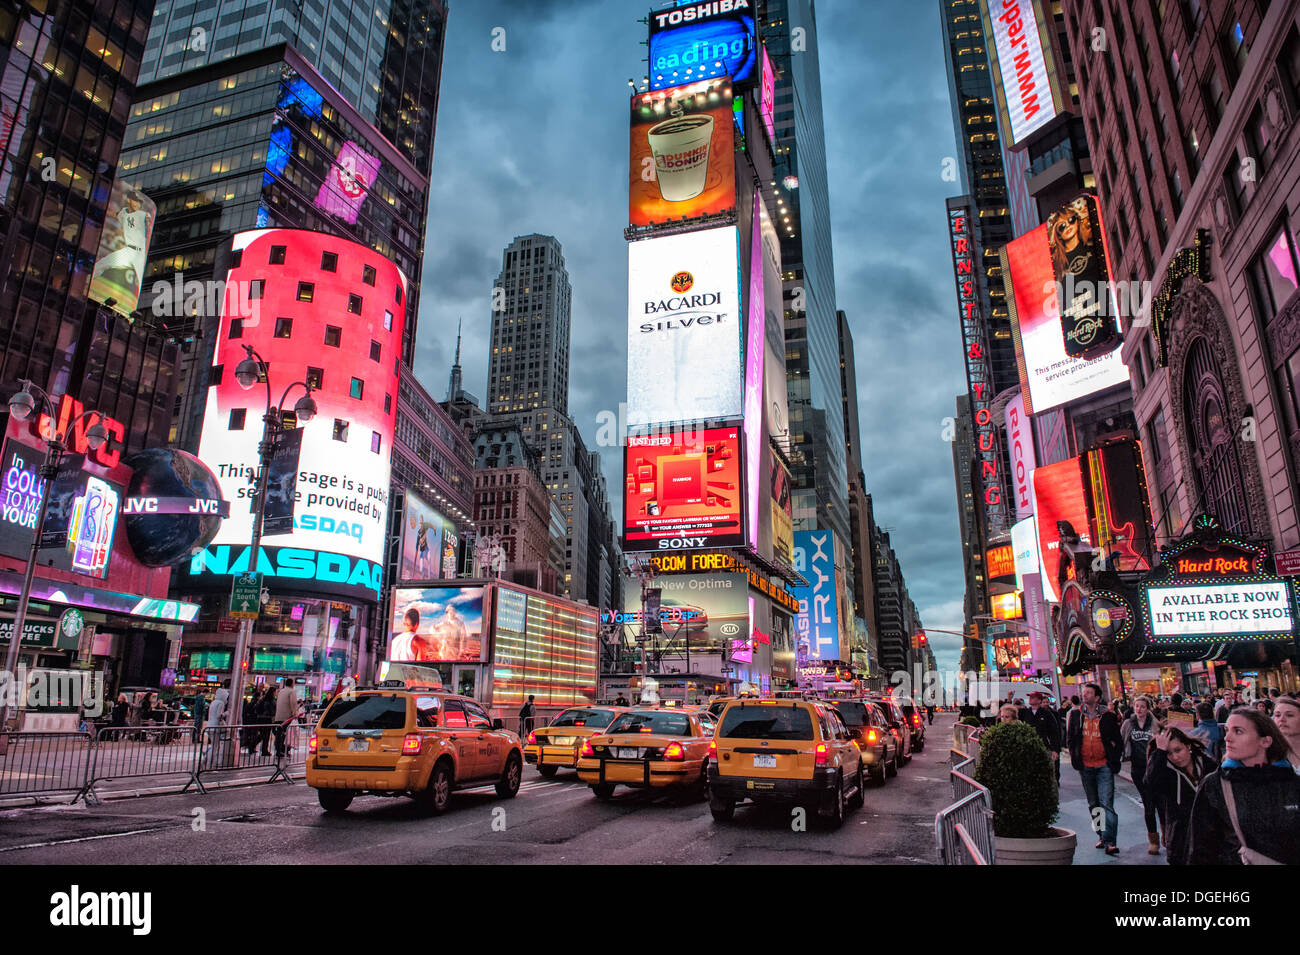 Lively Times Square by night in New York City, NY, USA - Stock Image